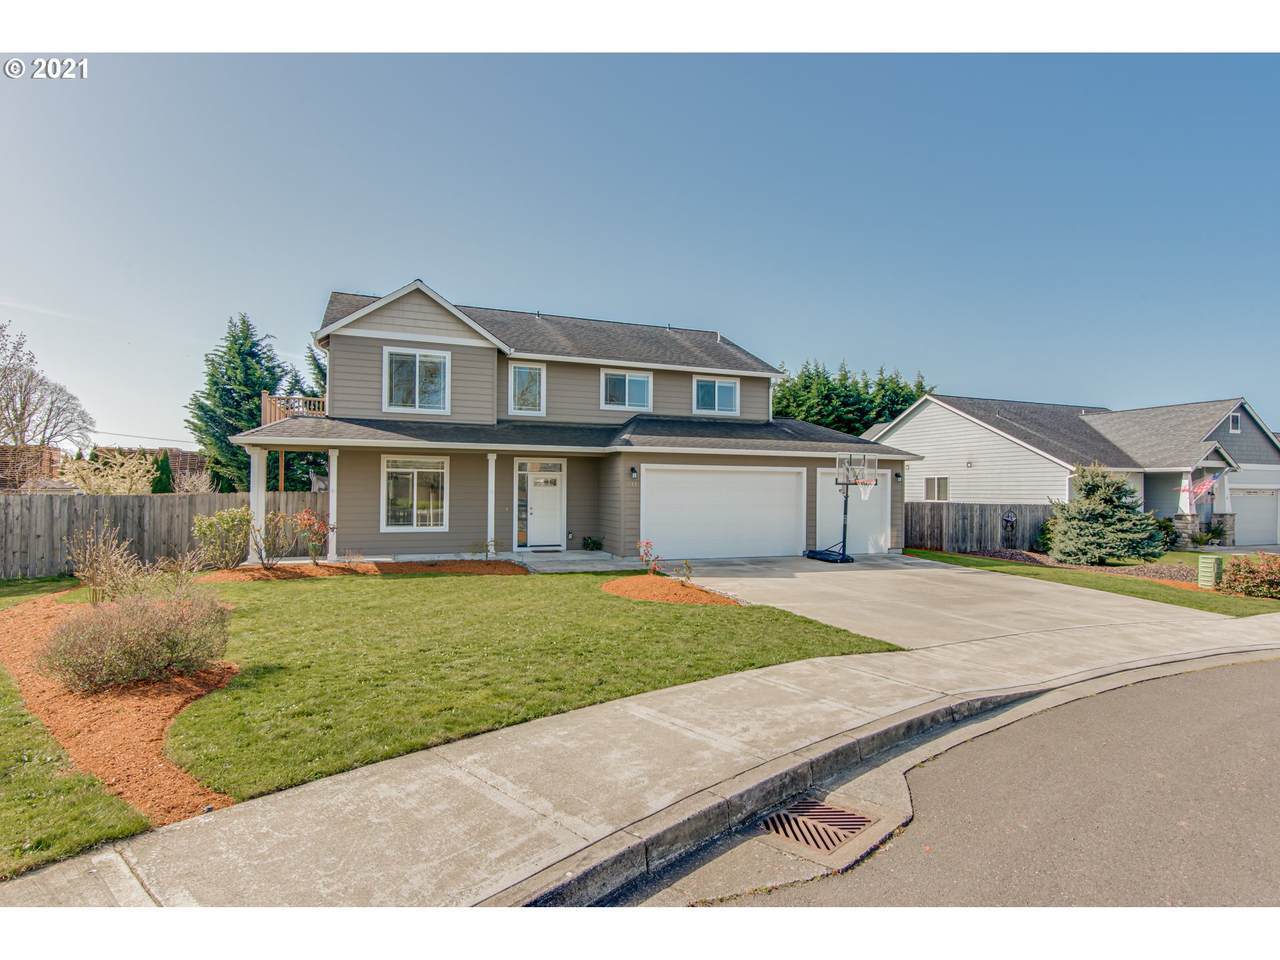 411 Twin Flower Dr - Photo 1